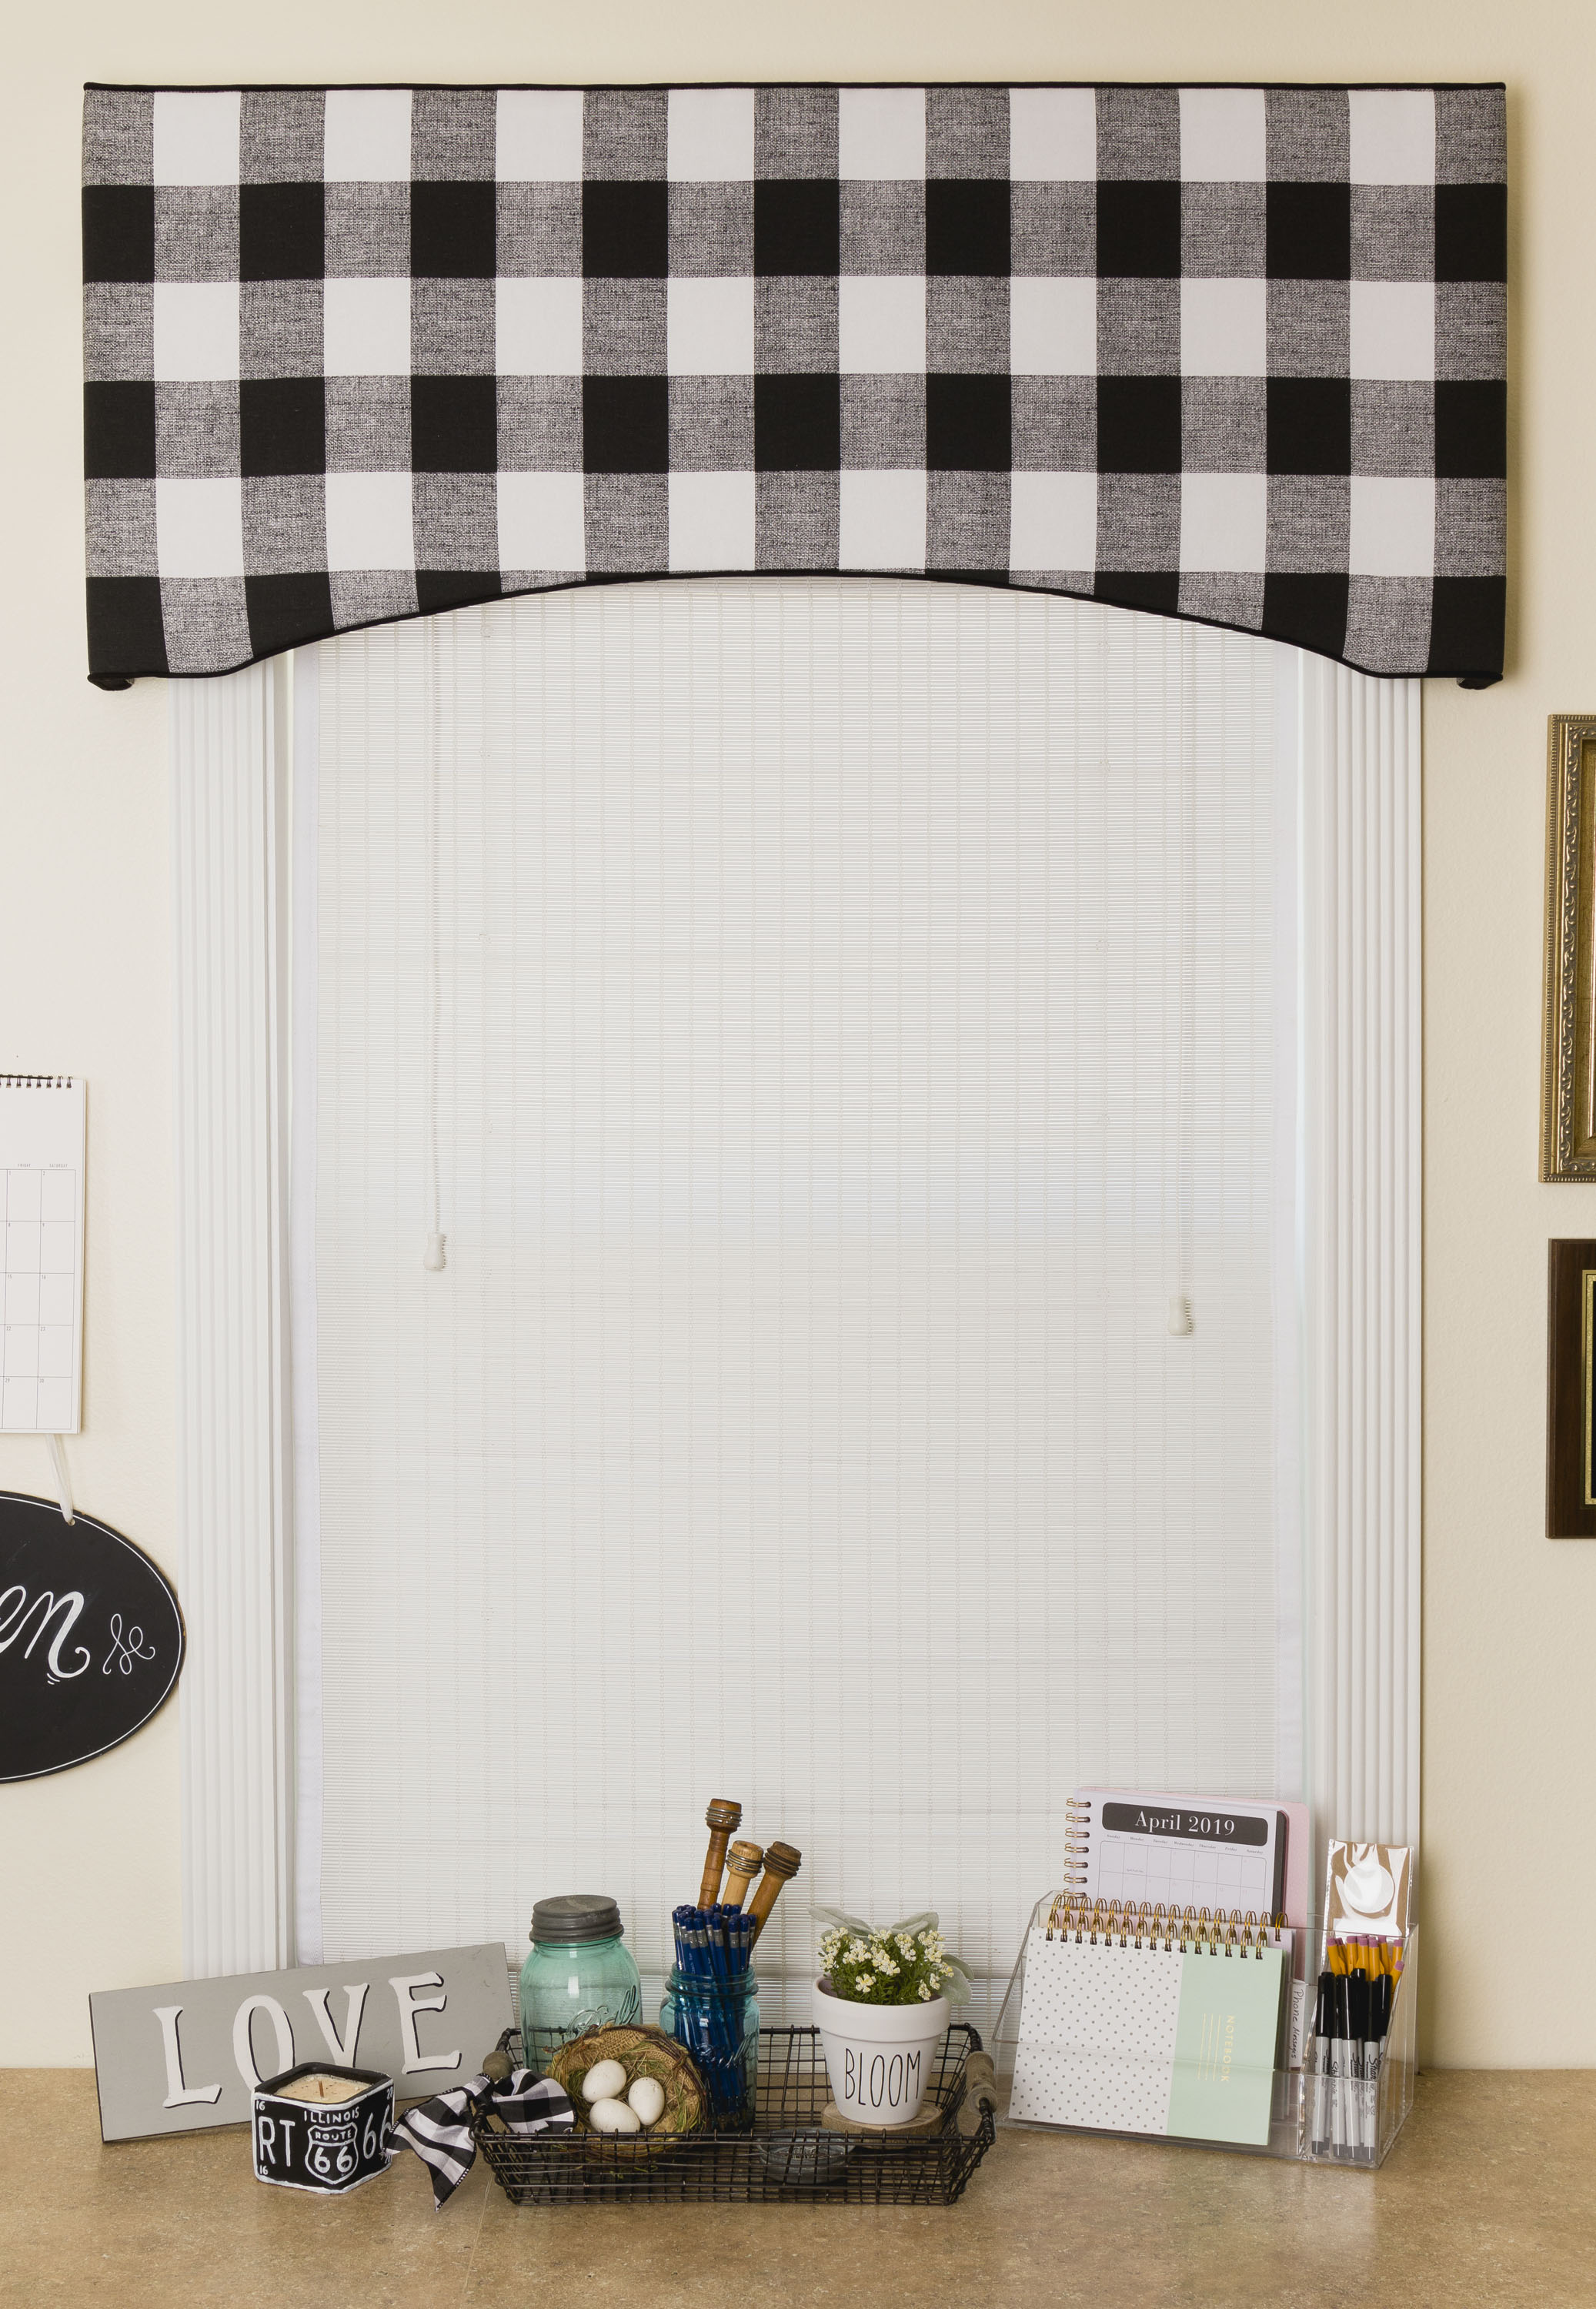 Window Treatment, Valance-Cornice Board Reveal, DIY Window Treatment, Organization